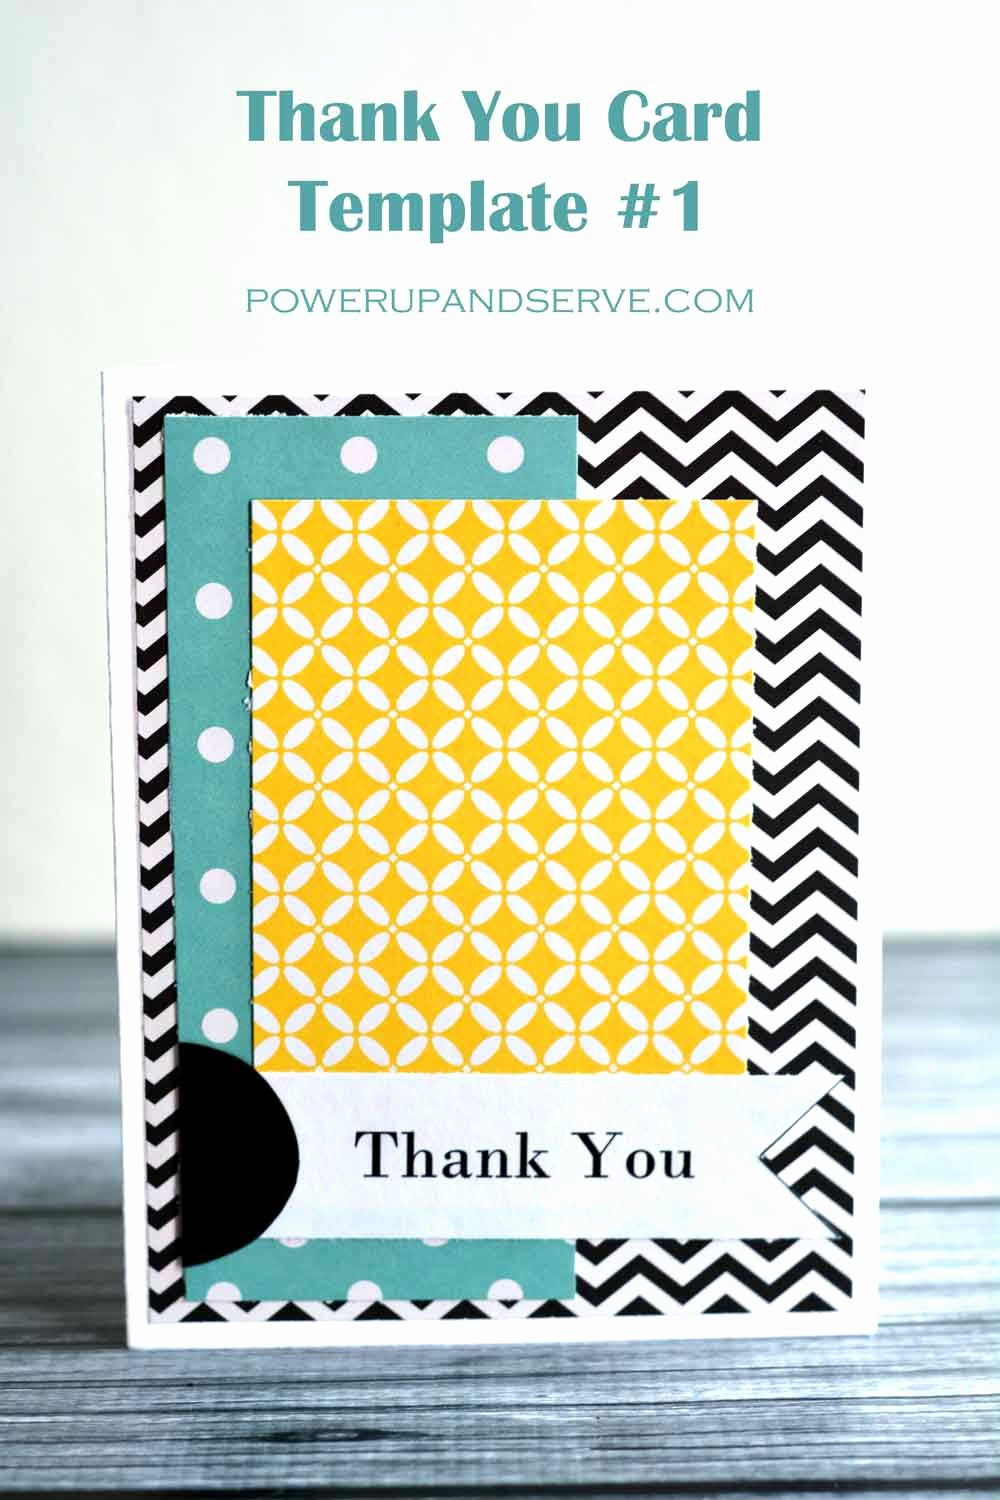 Thank You Cards Template Unique Thank You Card Template 1 Power Up and Serve